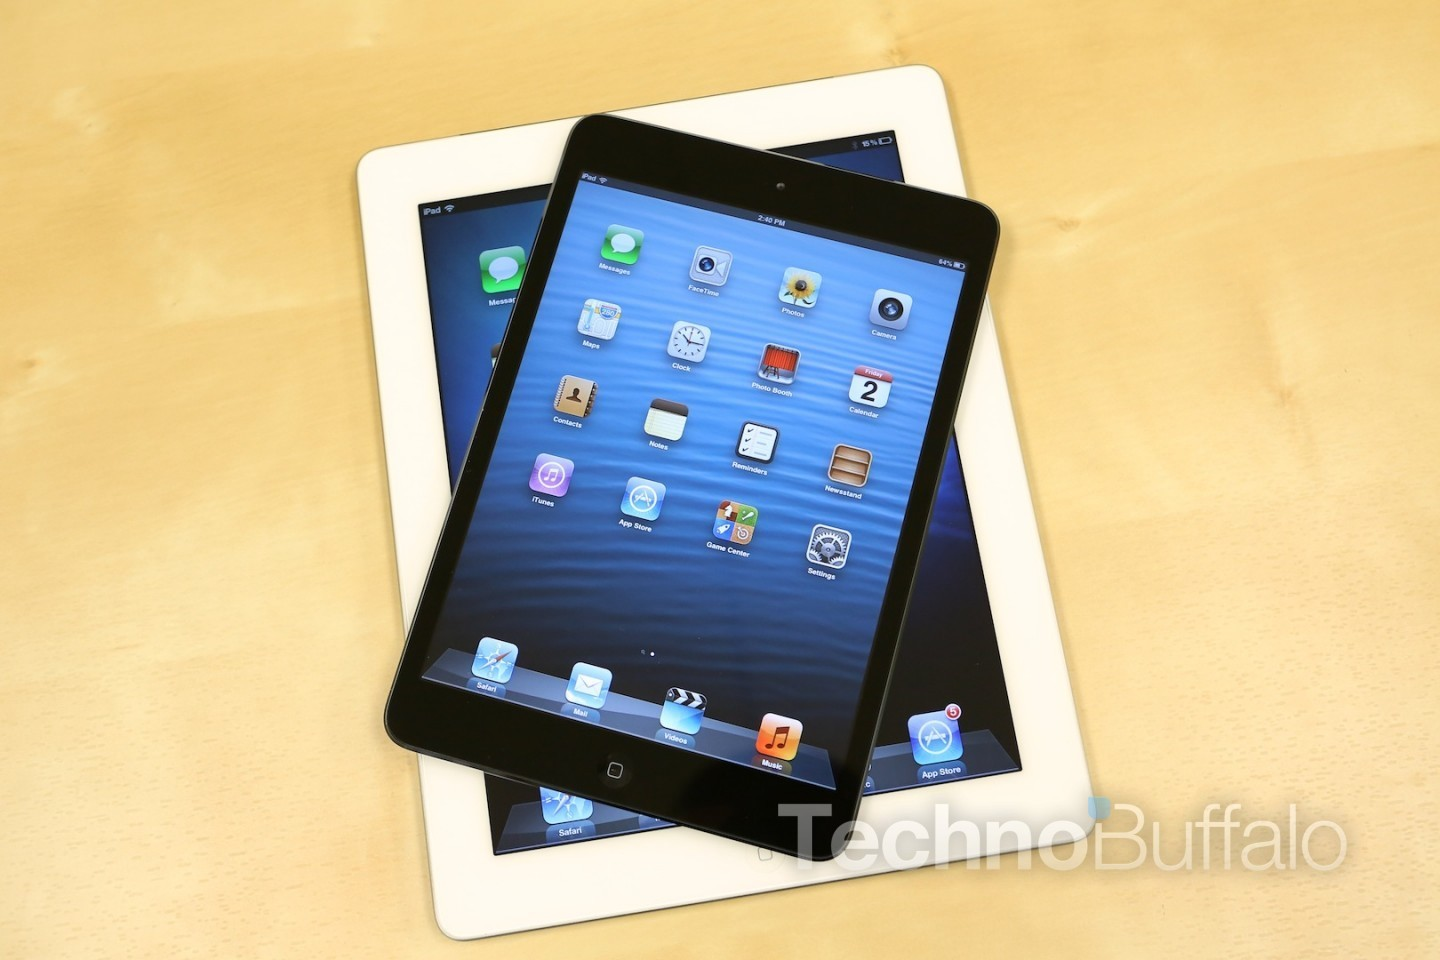 Hd Wallpapers Of Ipad A: All HD Wallpapers: Ipad Mini Pictures